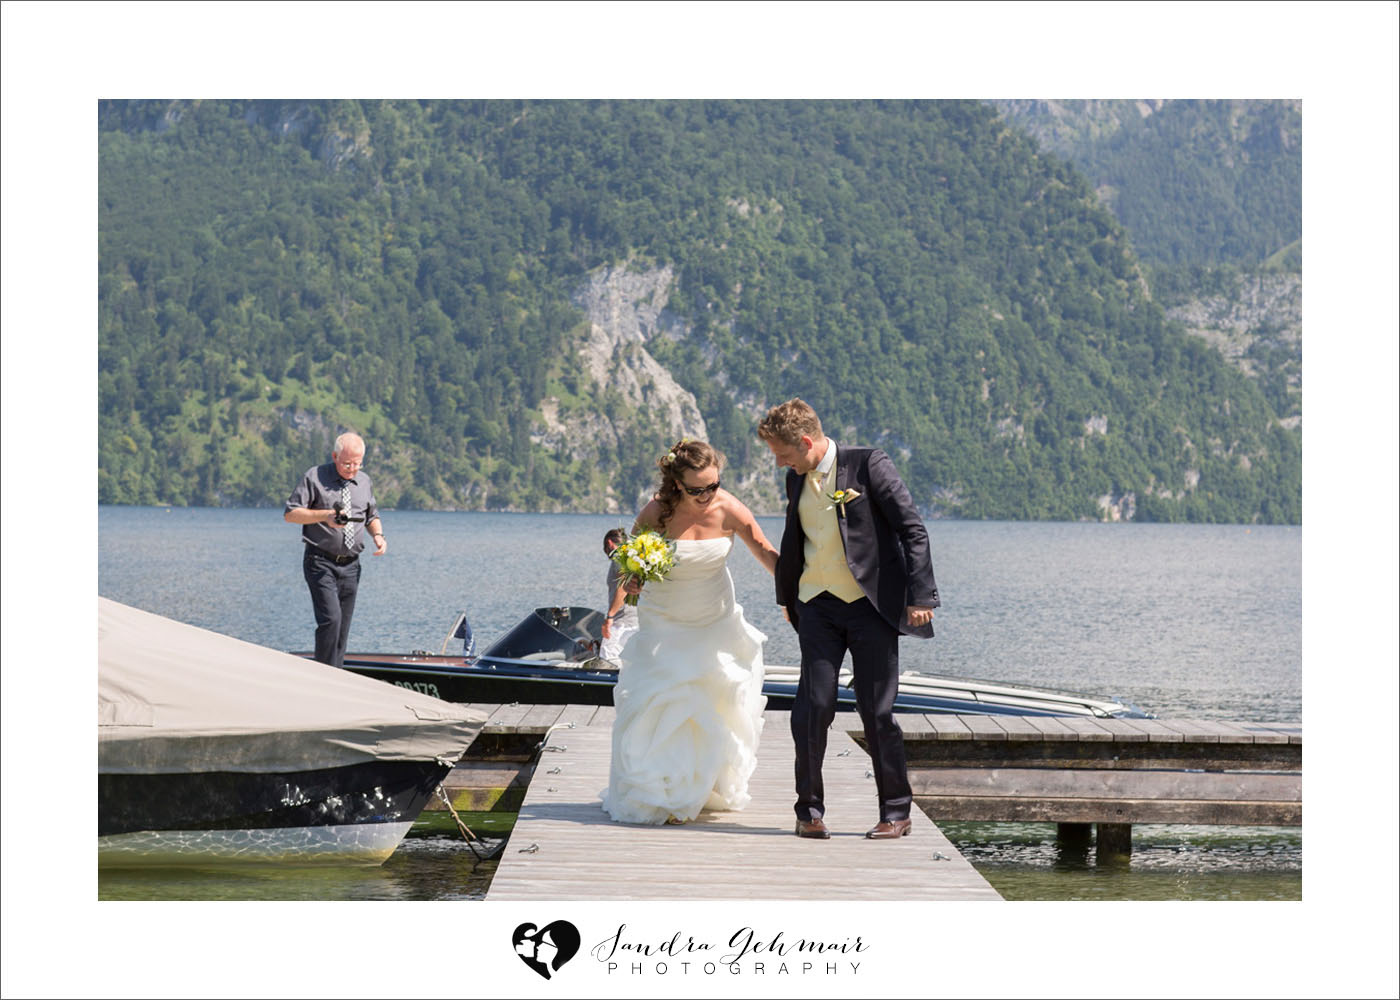 013_heiraten_am_see_spitzvilla_sandra_gehmair